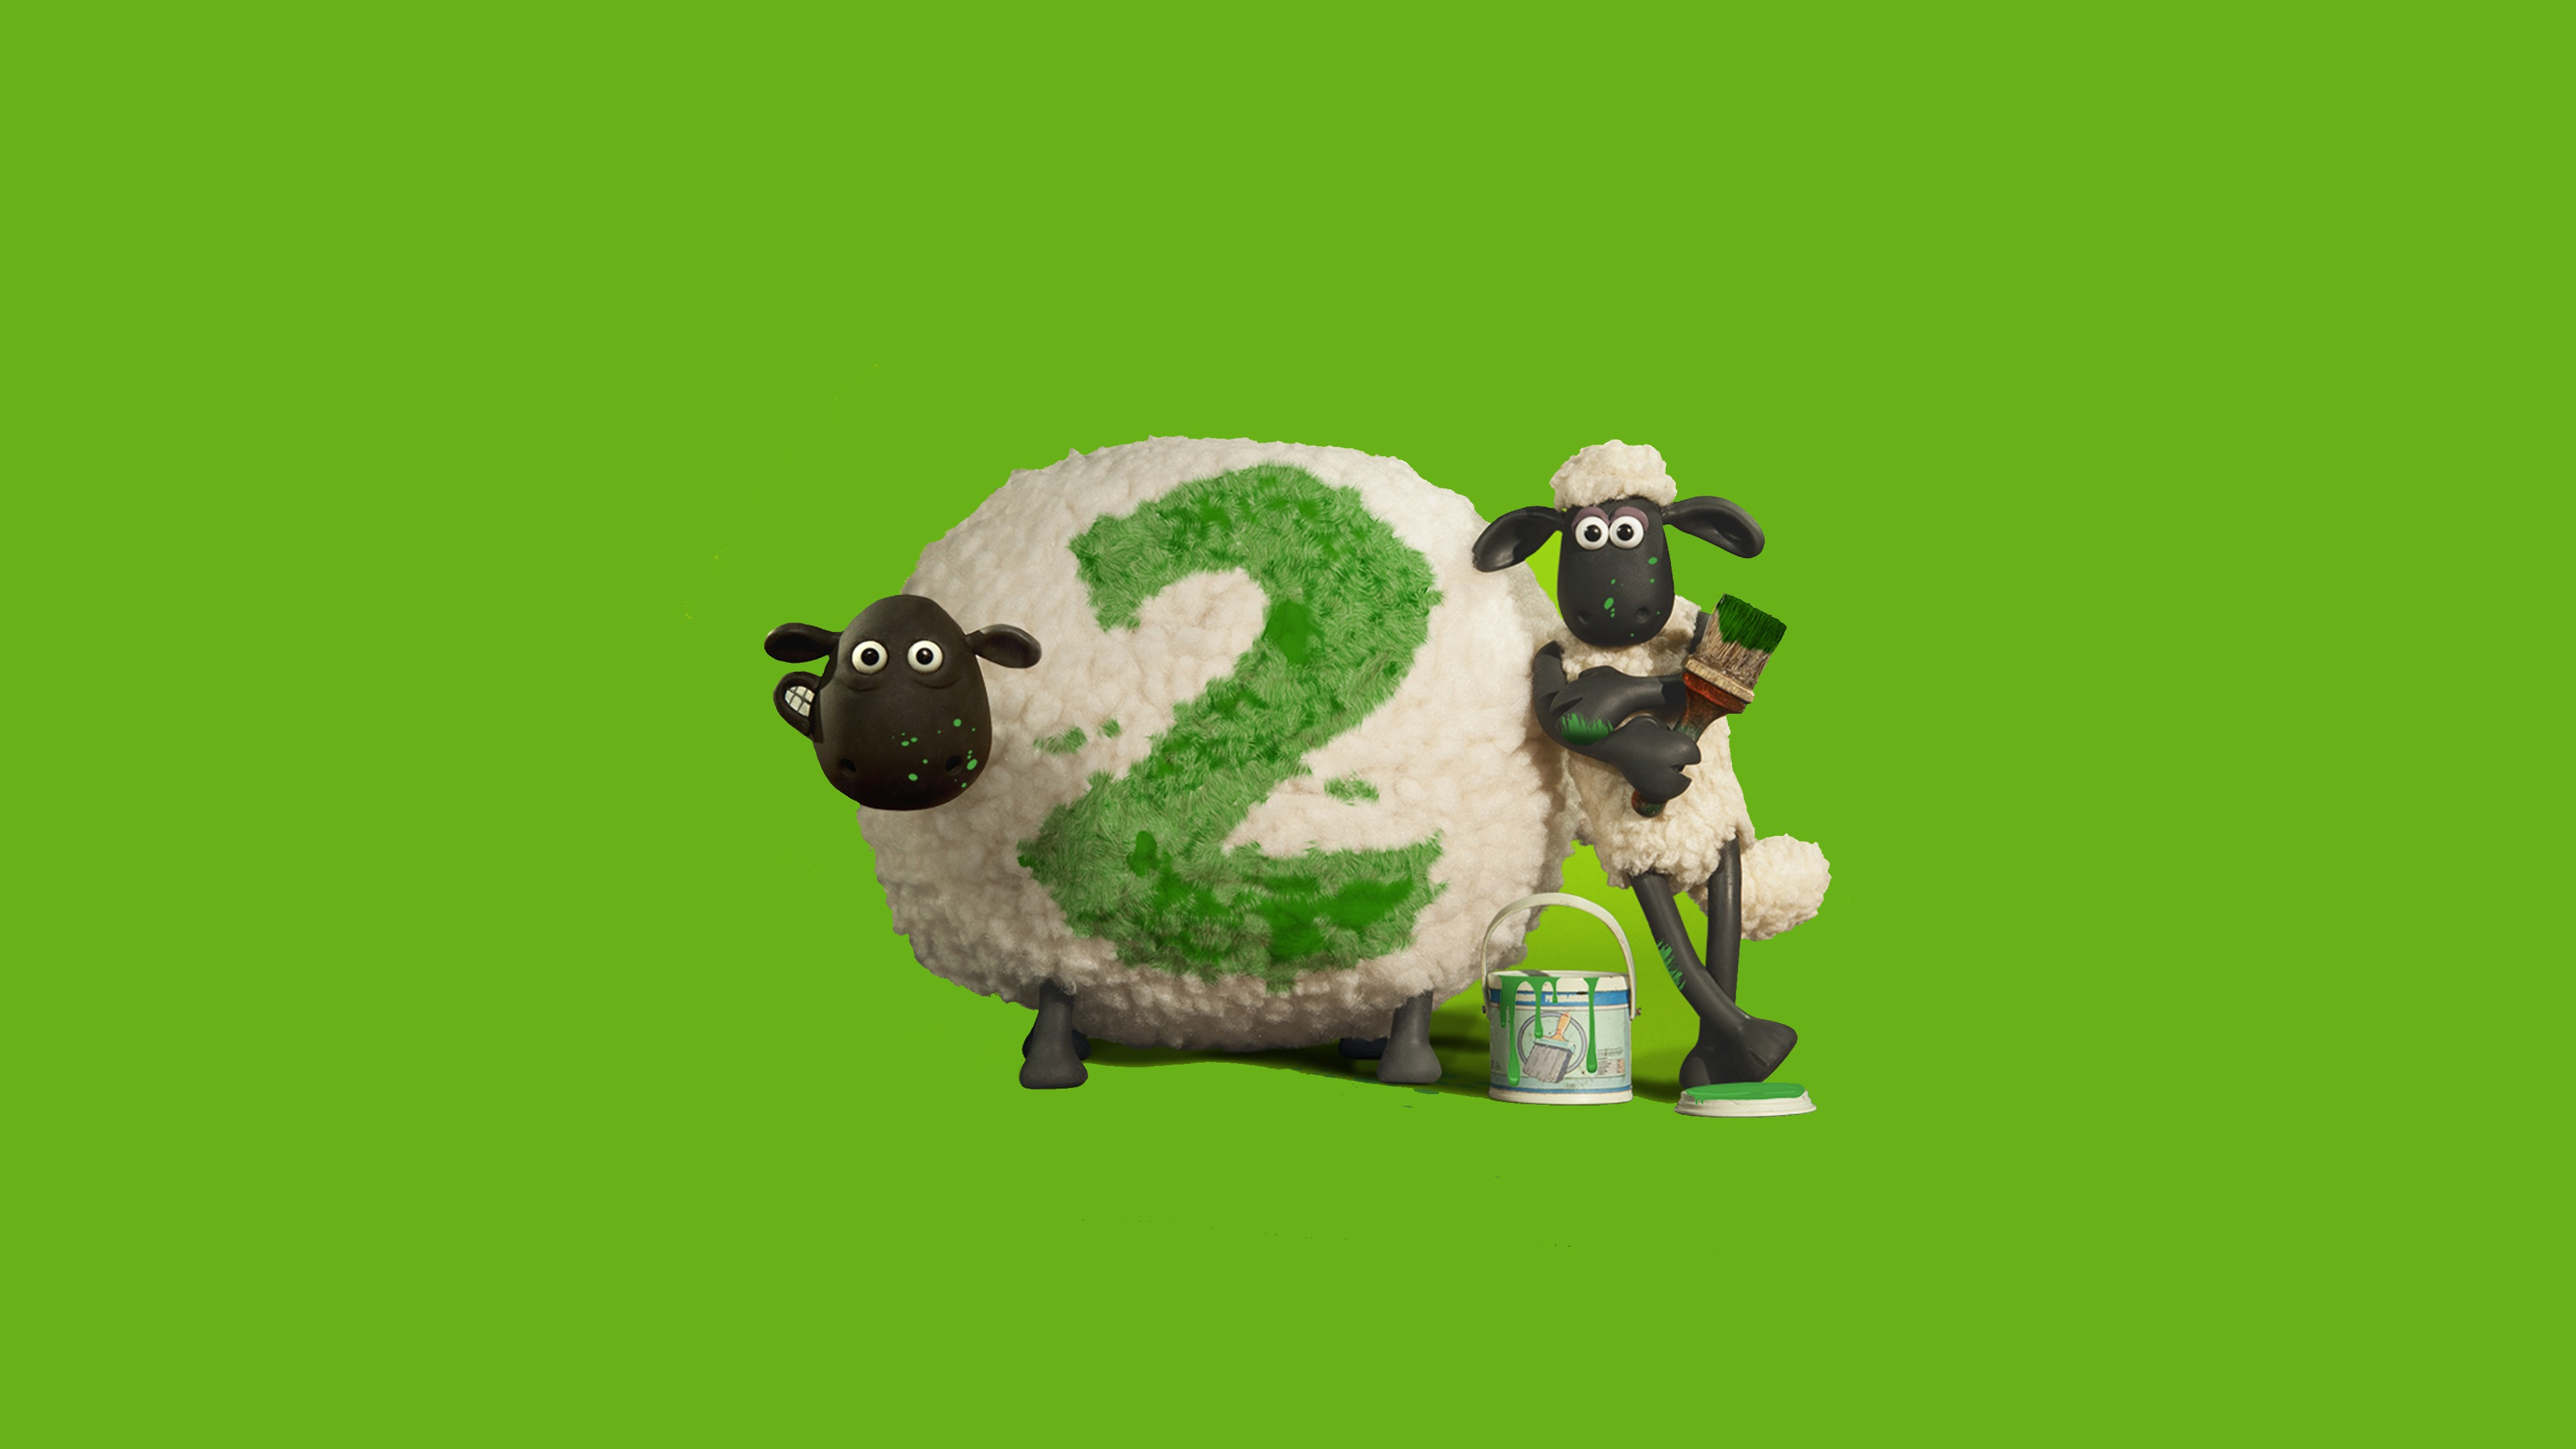 wallpaper shaun the sheep, best animation movies, movies #12318